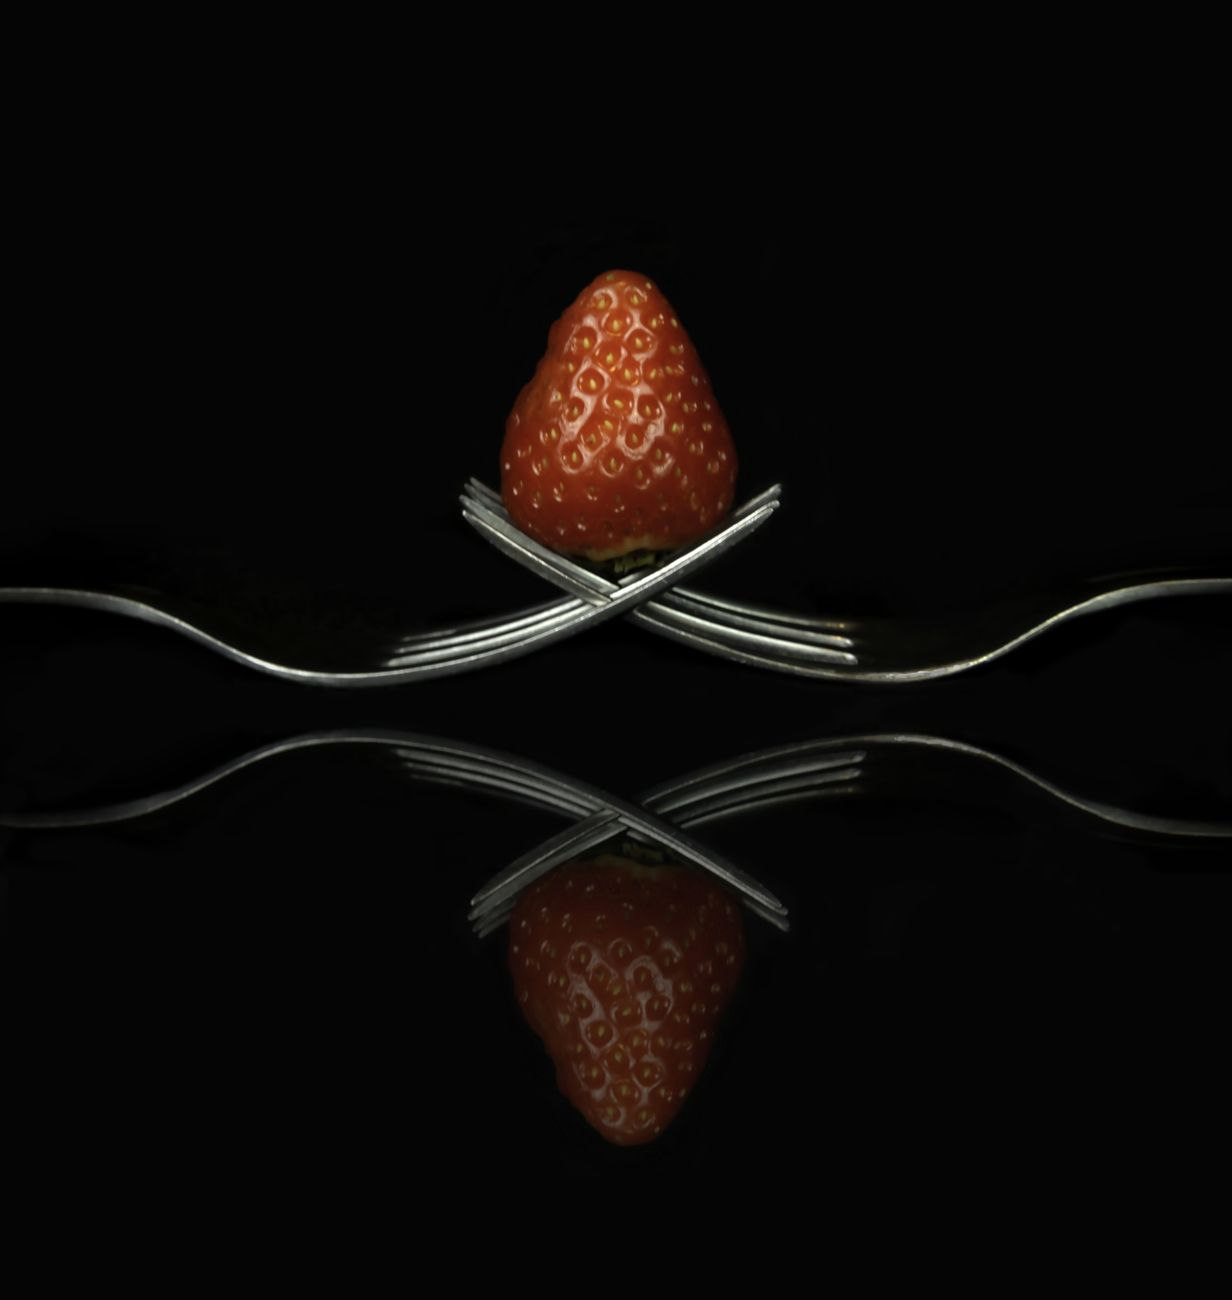 Strawberry on two forks against black